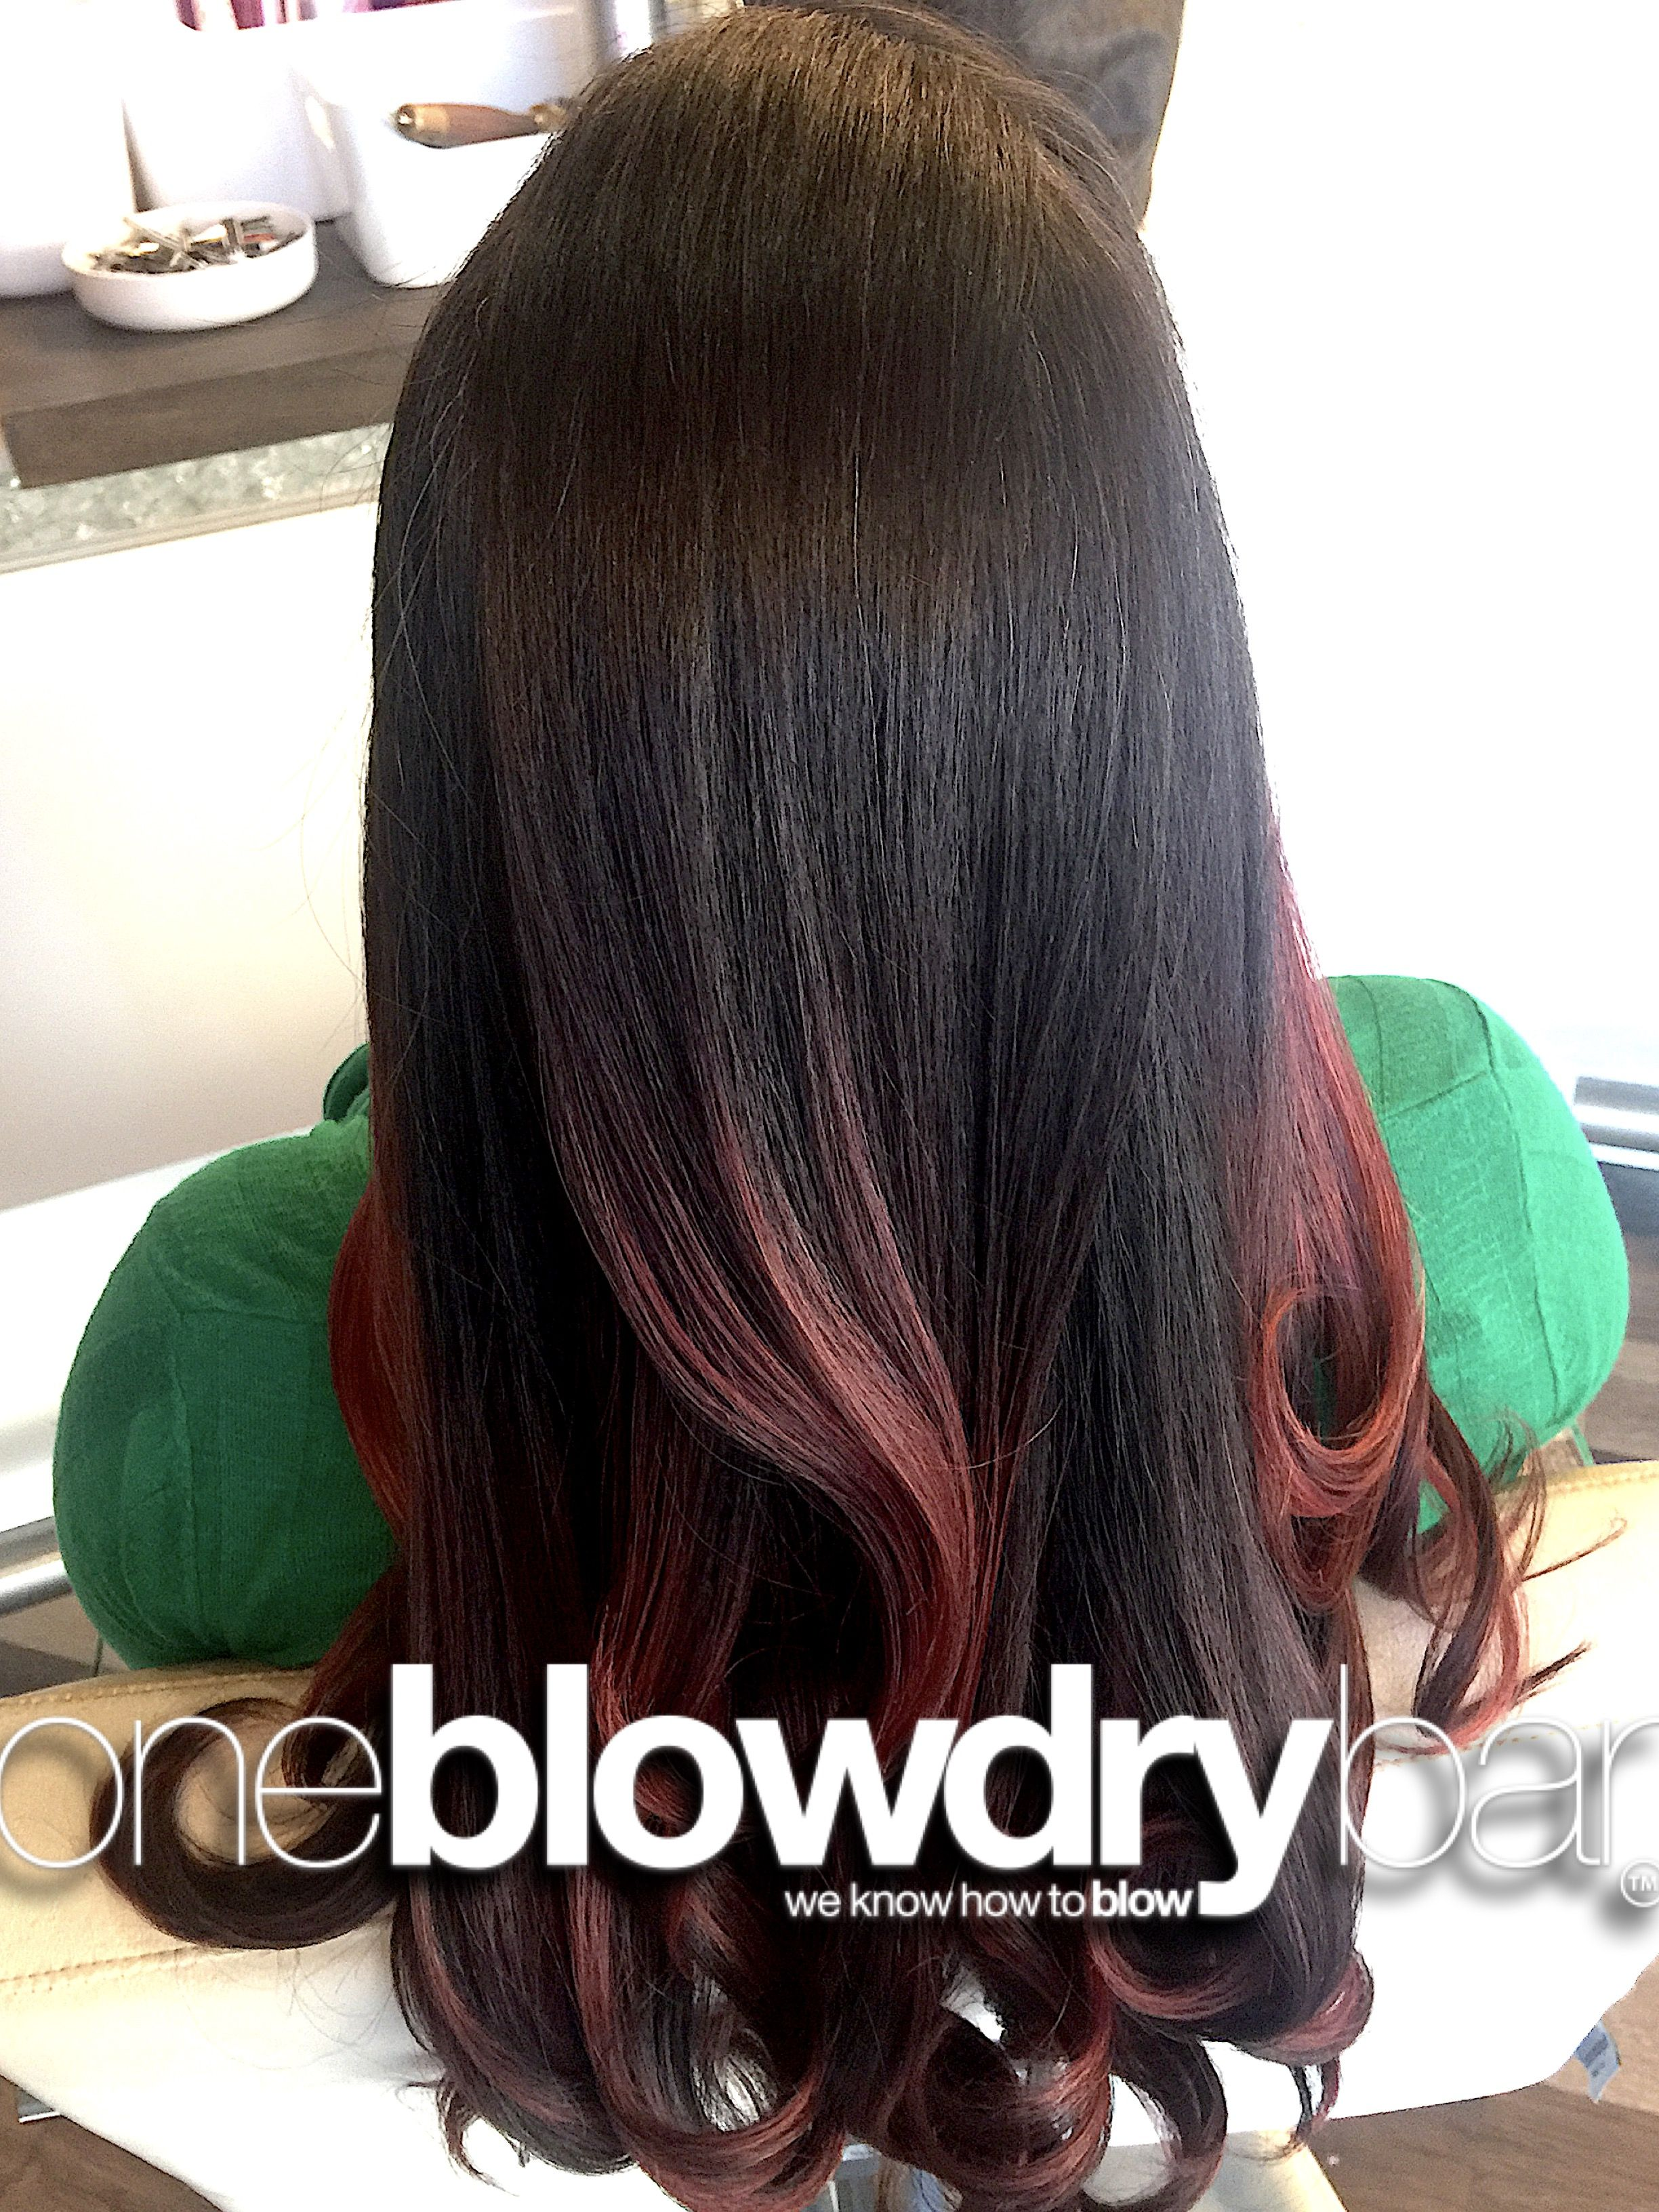 Customer blow dry blowout hair styling from the popular blowdry